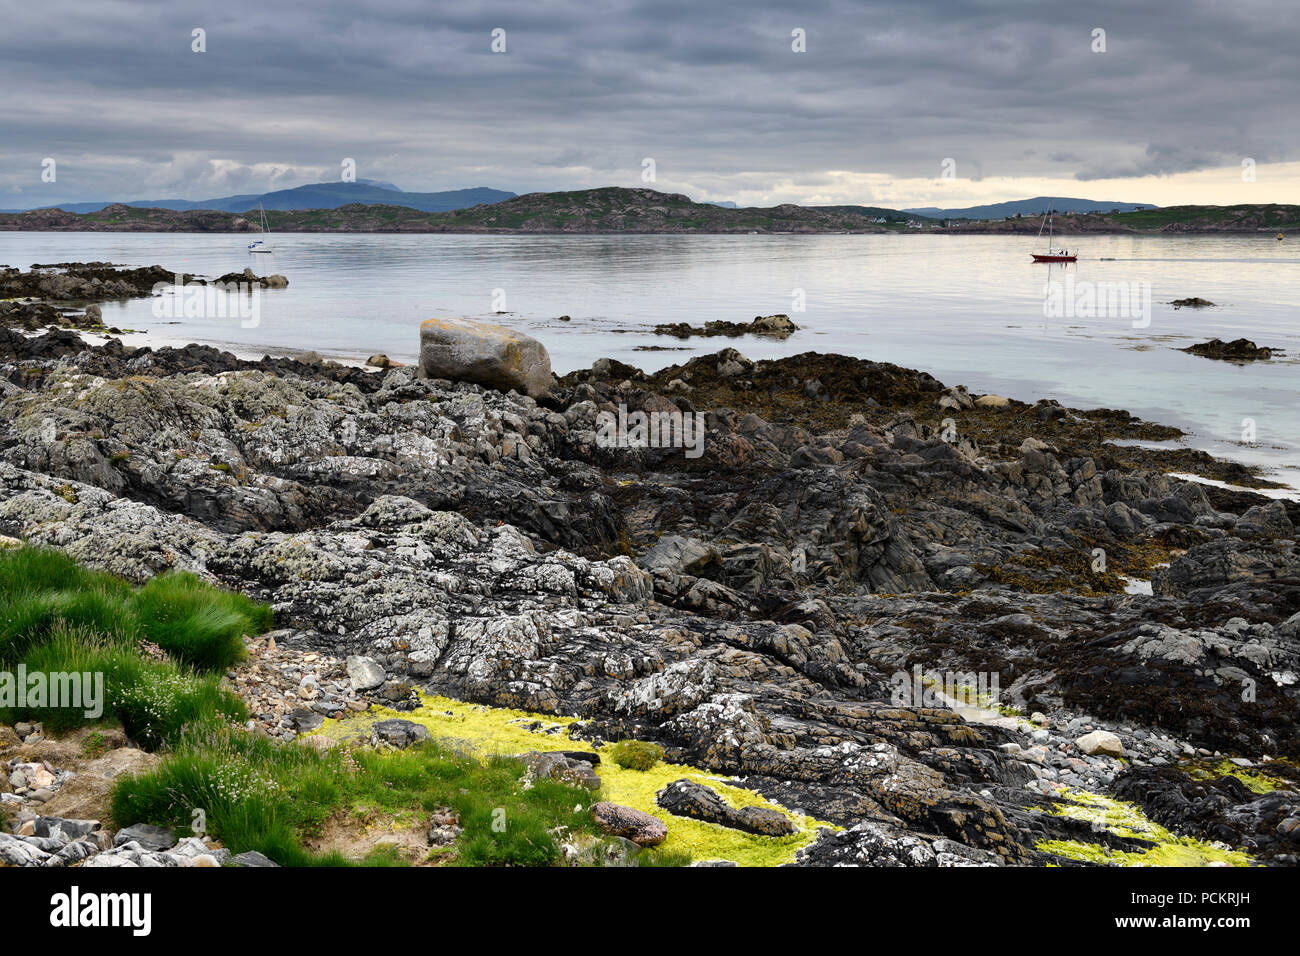 Rocky shore of Isle of Iona with sailboats on Sound of Iona and view of Fionnphort Isle of Mull mountains Inner Hebrides Scotland UK - Stock Image